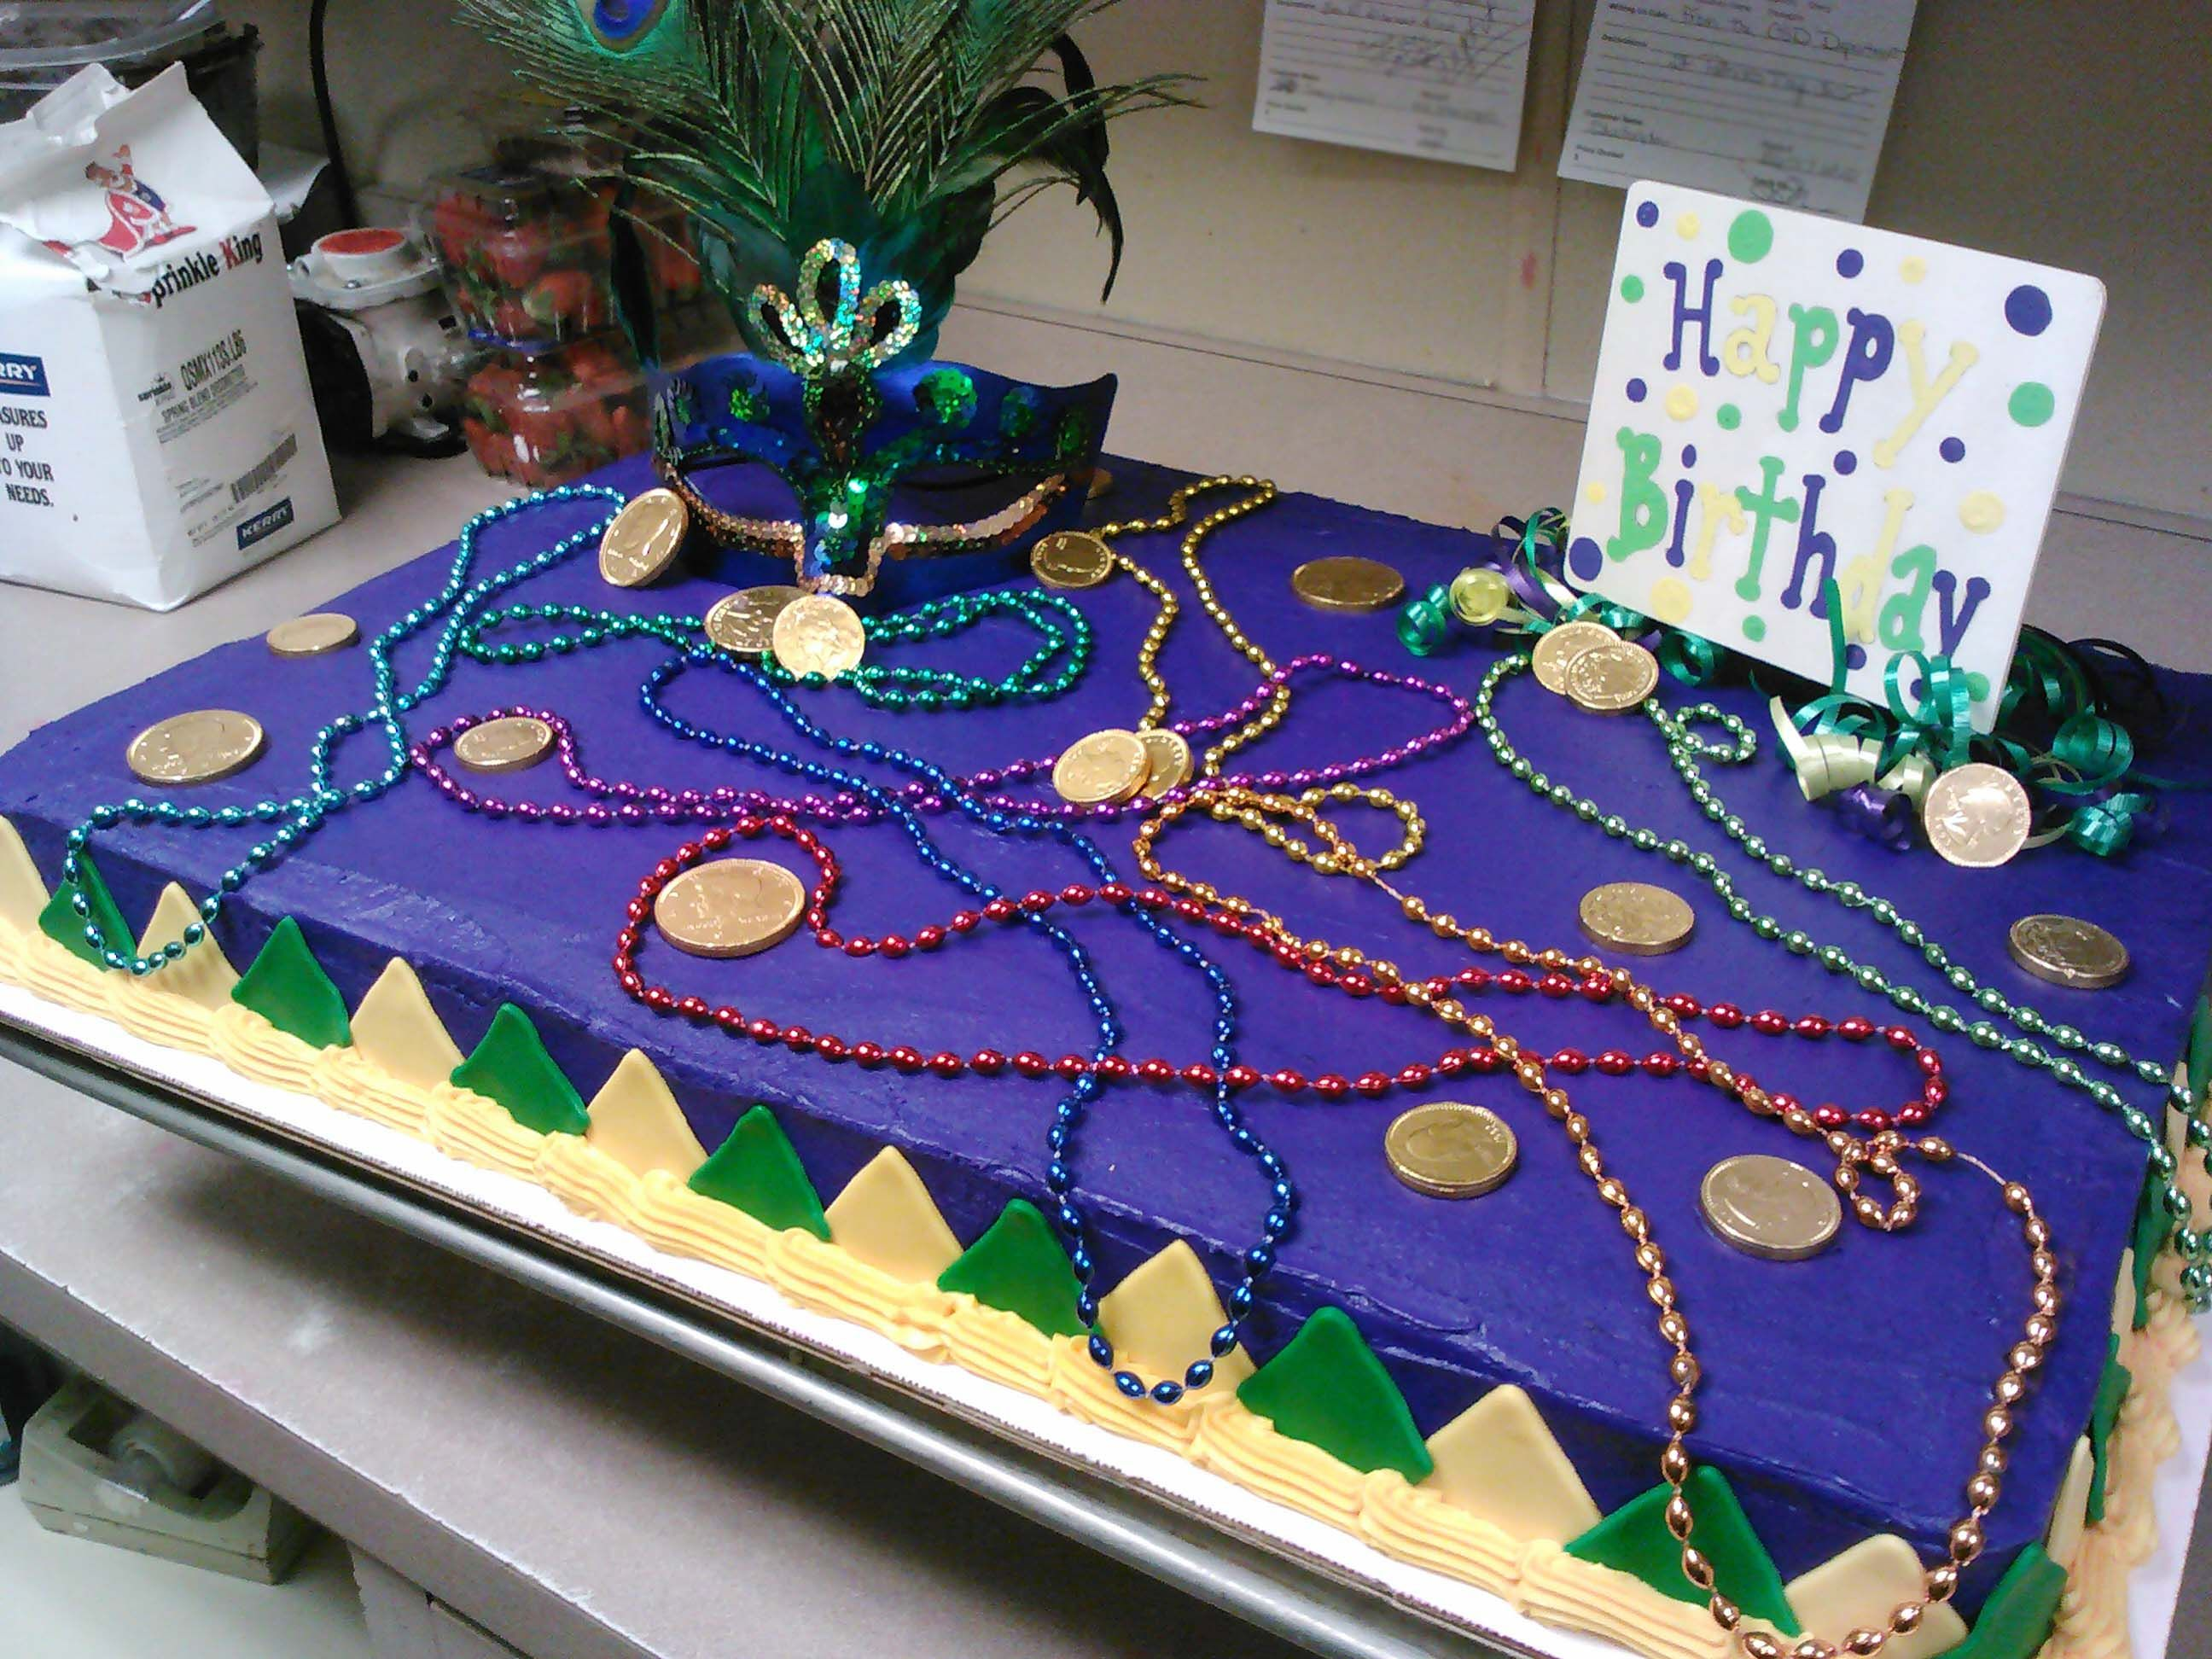 Mardi Gras birthday cake designed by Cosentinos Brookside Market